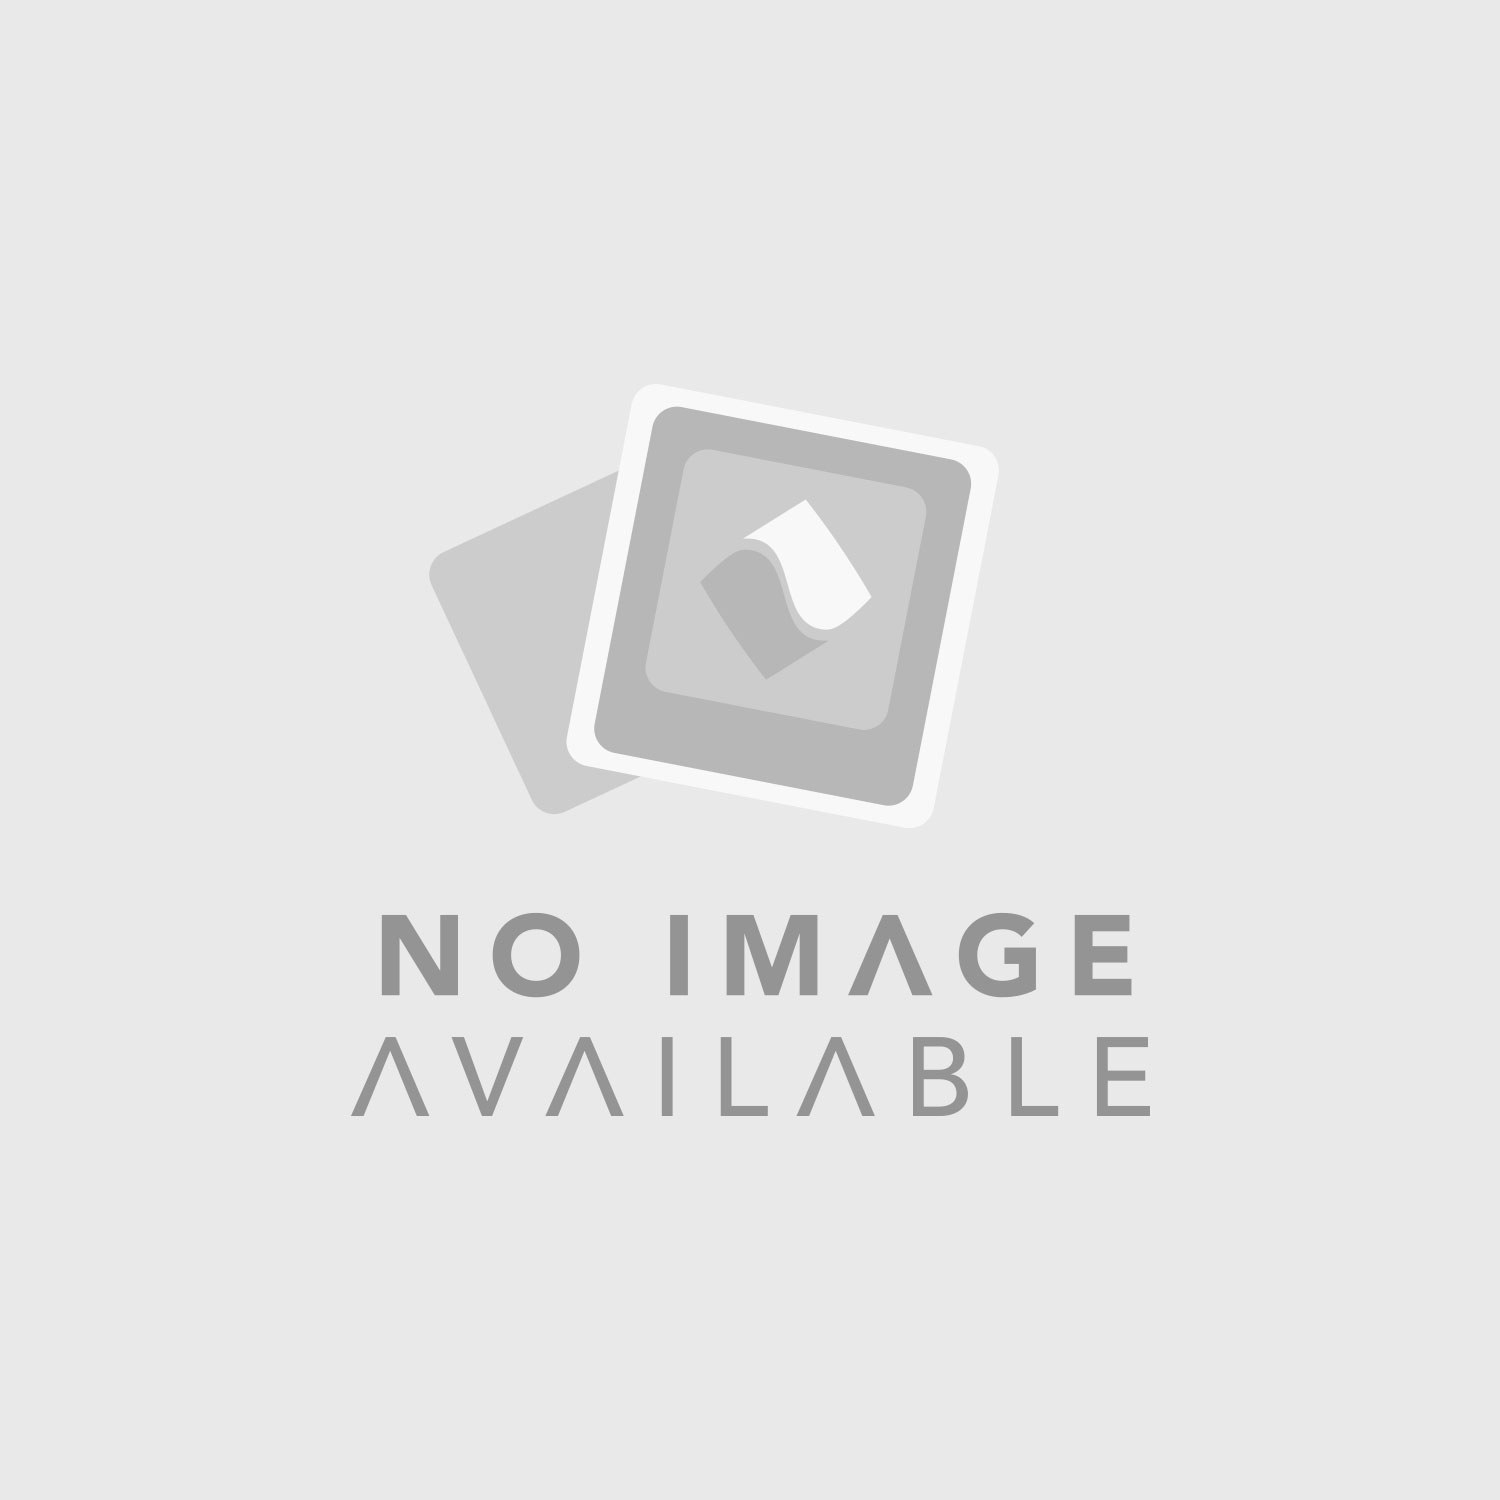 Waves Abbey Road Chambers Tape Delay and Reverb Software for Pro Audio (Download)